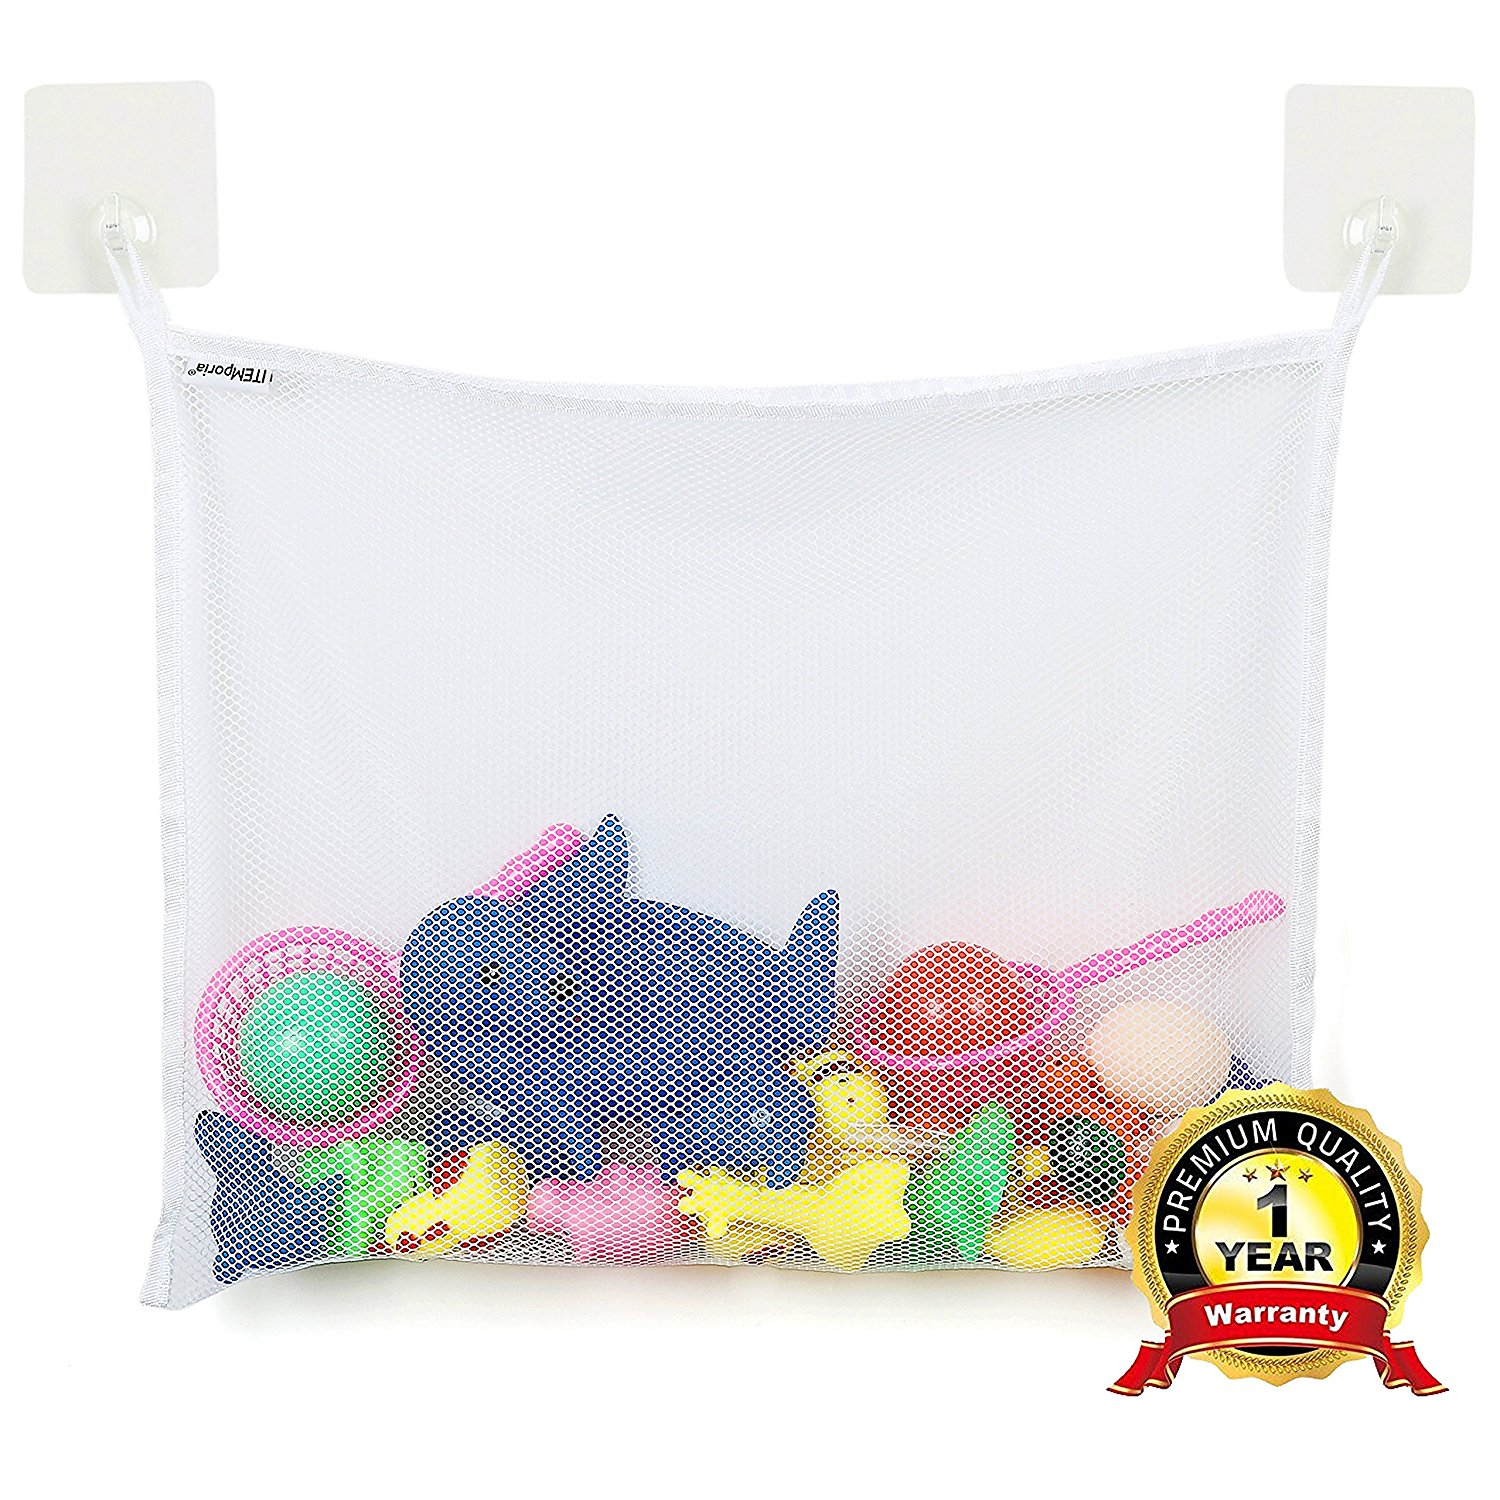 ITEMporia Bath Toy Organizer with 2 Super Strong Adhesive Hooks - Bathtub Toys Holder Storage Net for Stuffed Animals - Bathroom Shower Kids Toy Bag Hammockfor Toddlers, Baby Boys and Girls